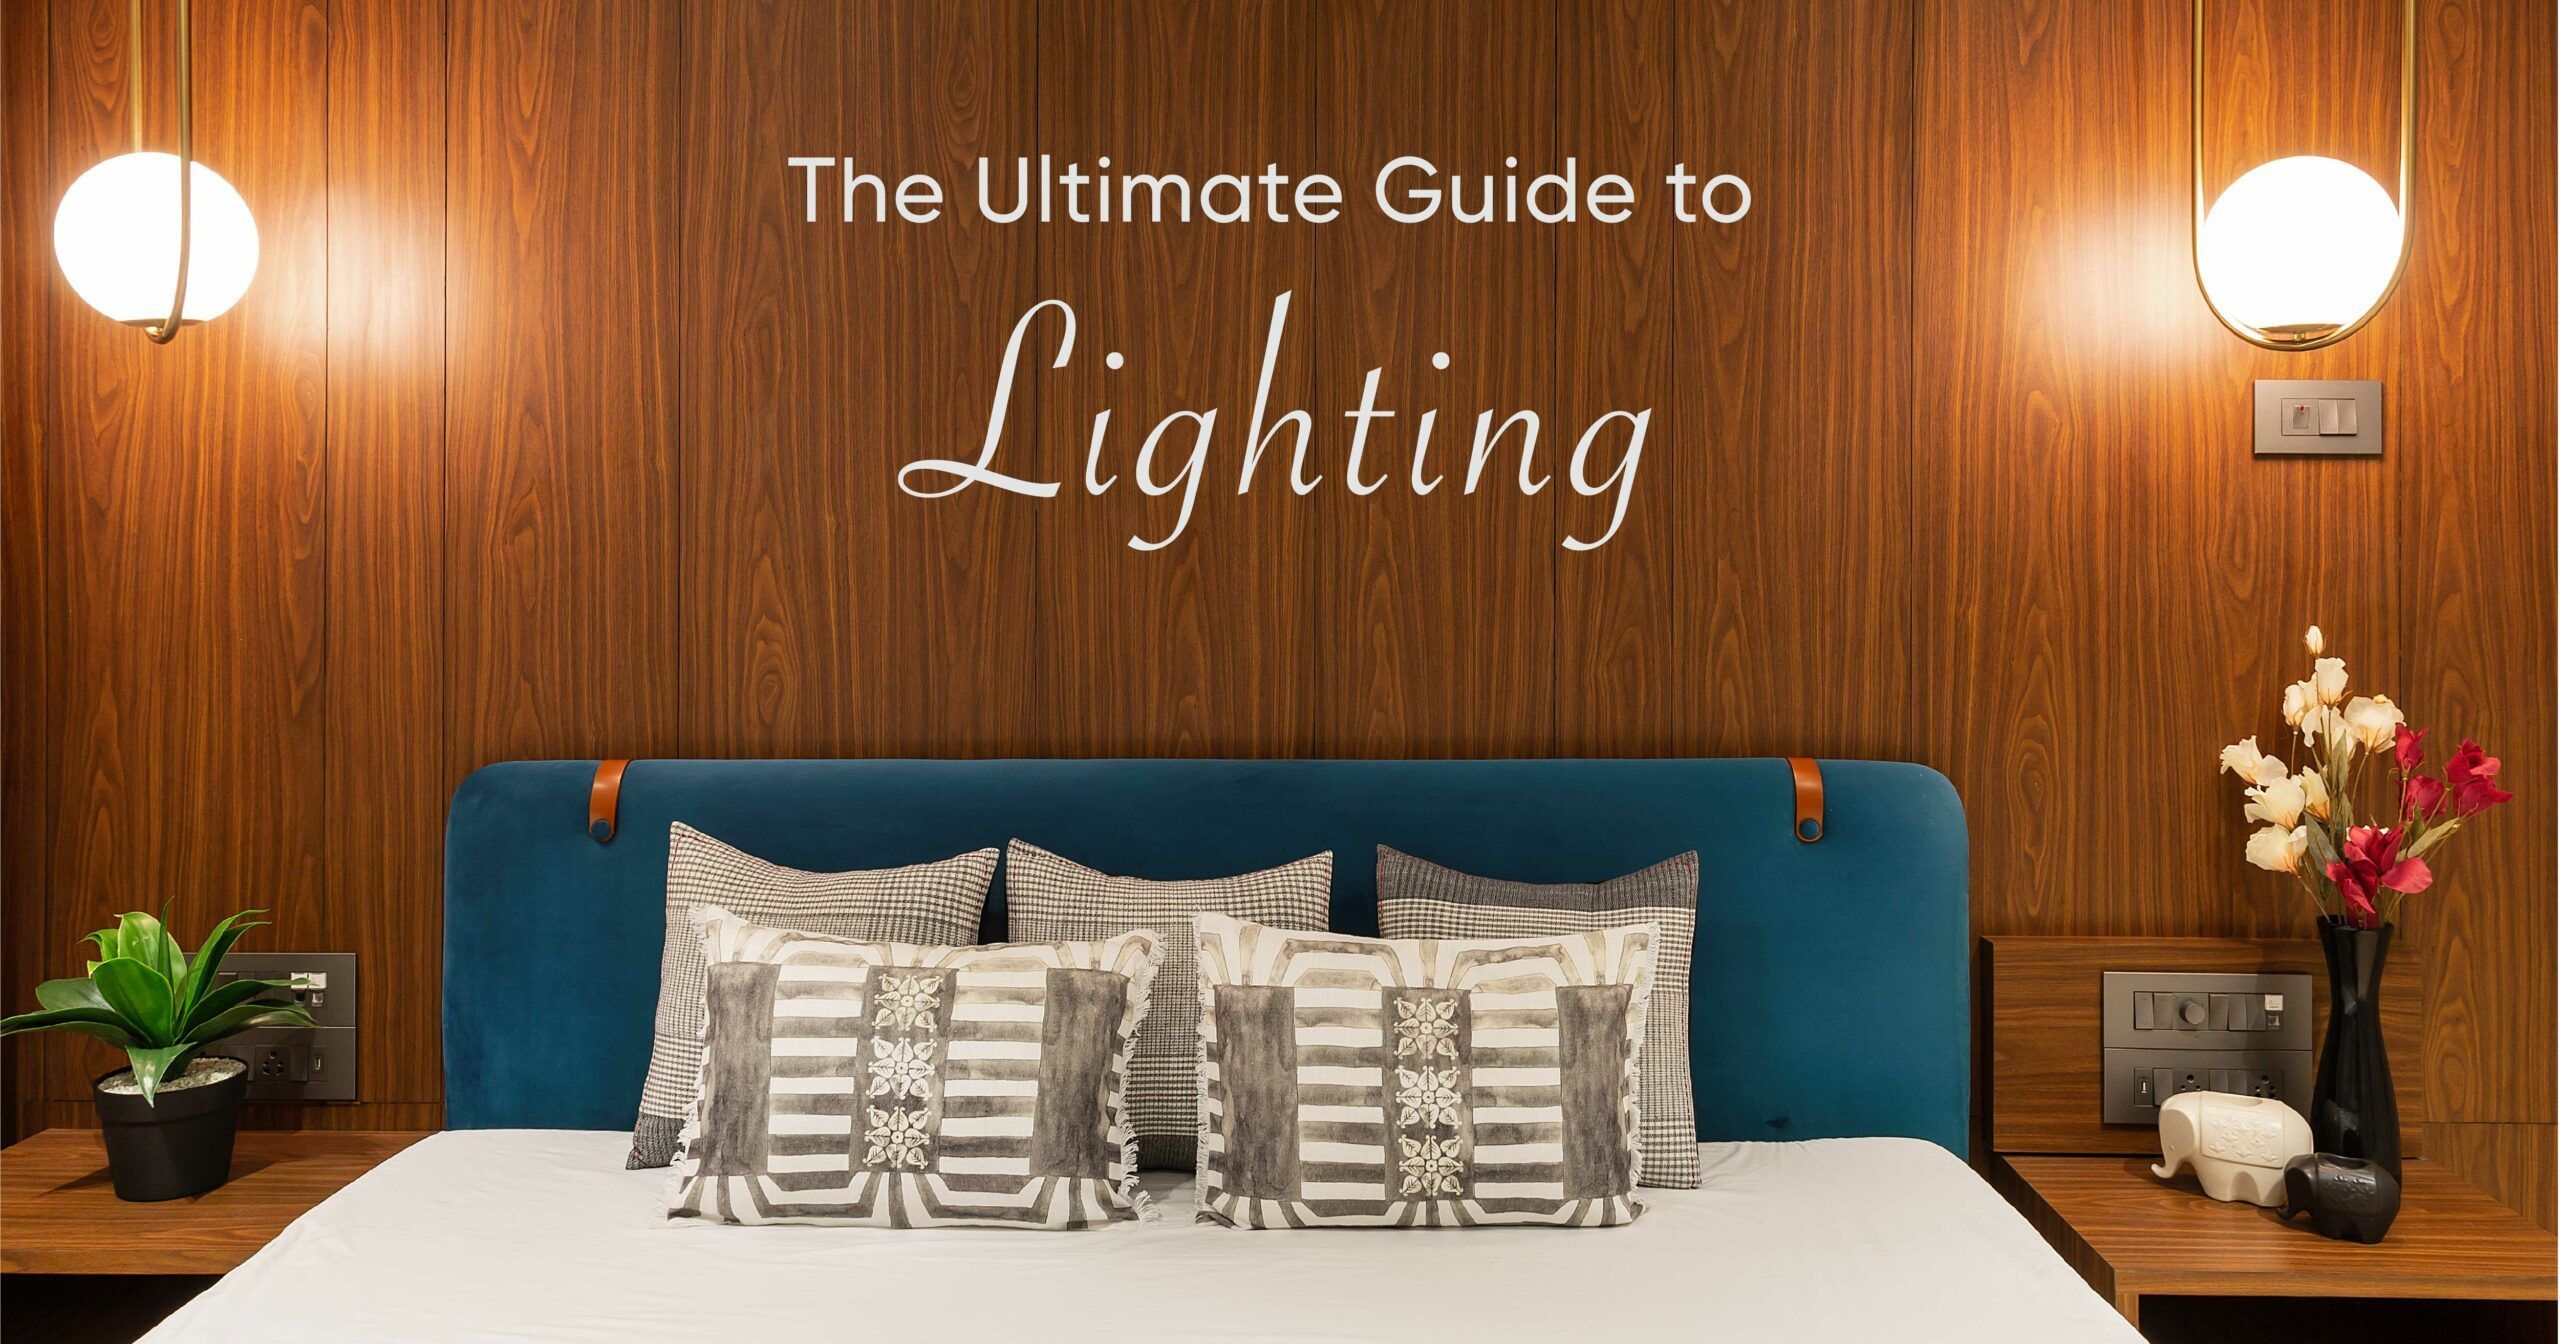 Your Search for All Things Lighting Ends Here